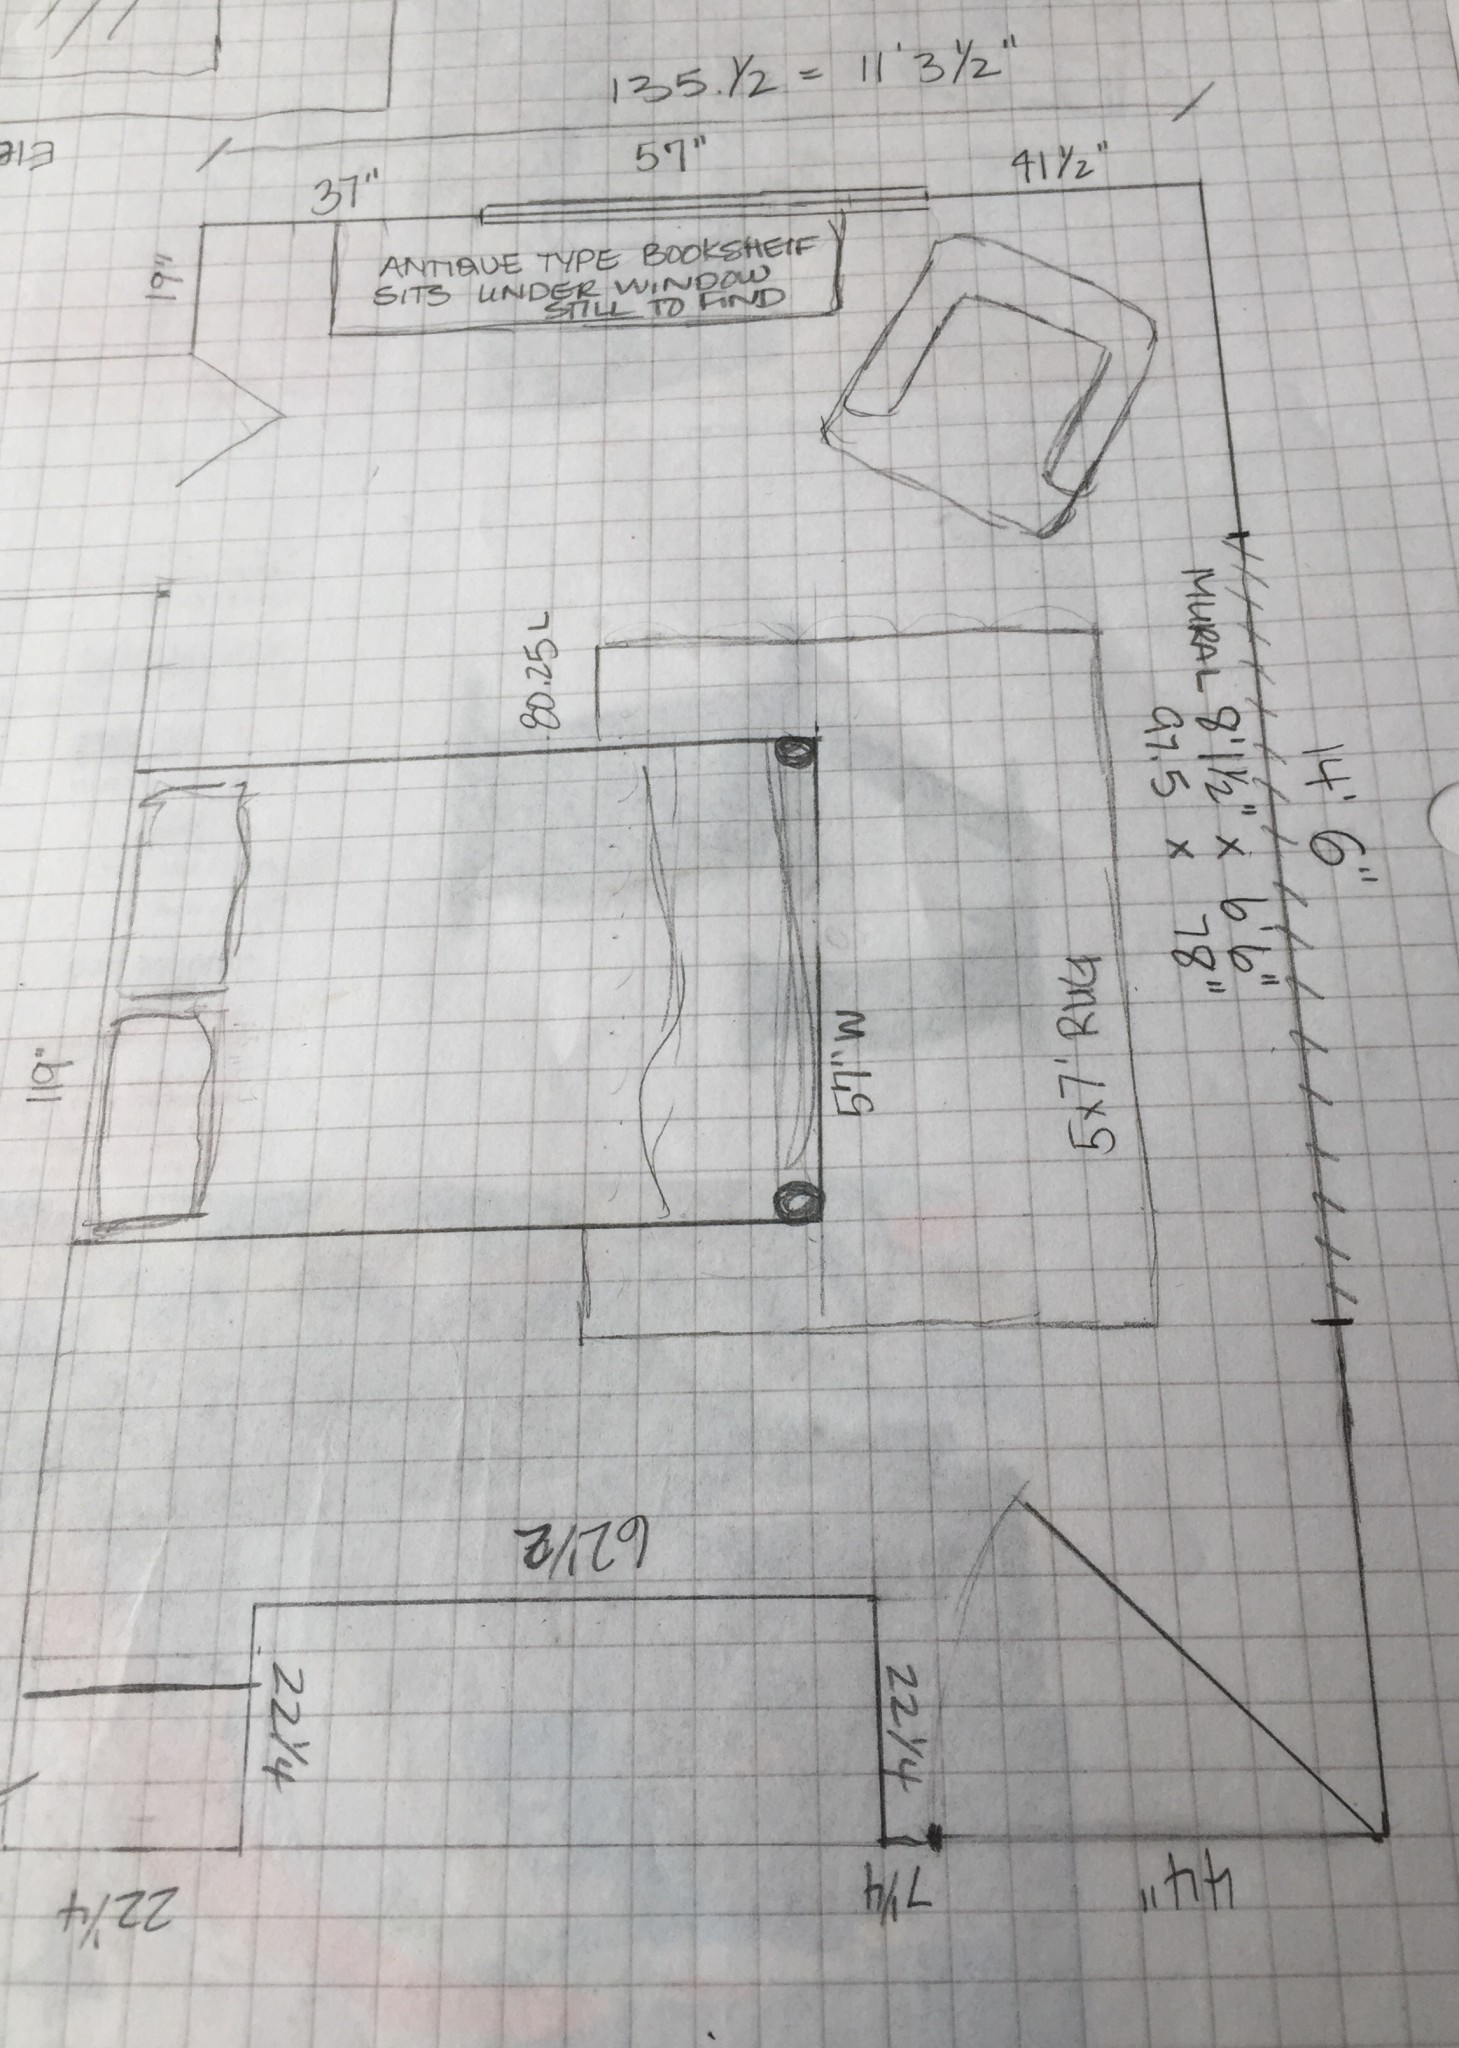 A Karen Fron Design hand drawn sketch of a client's bedroom with furniture layout.